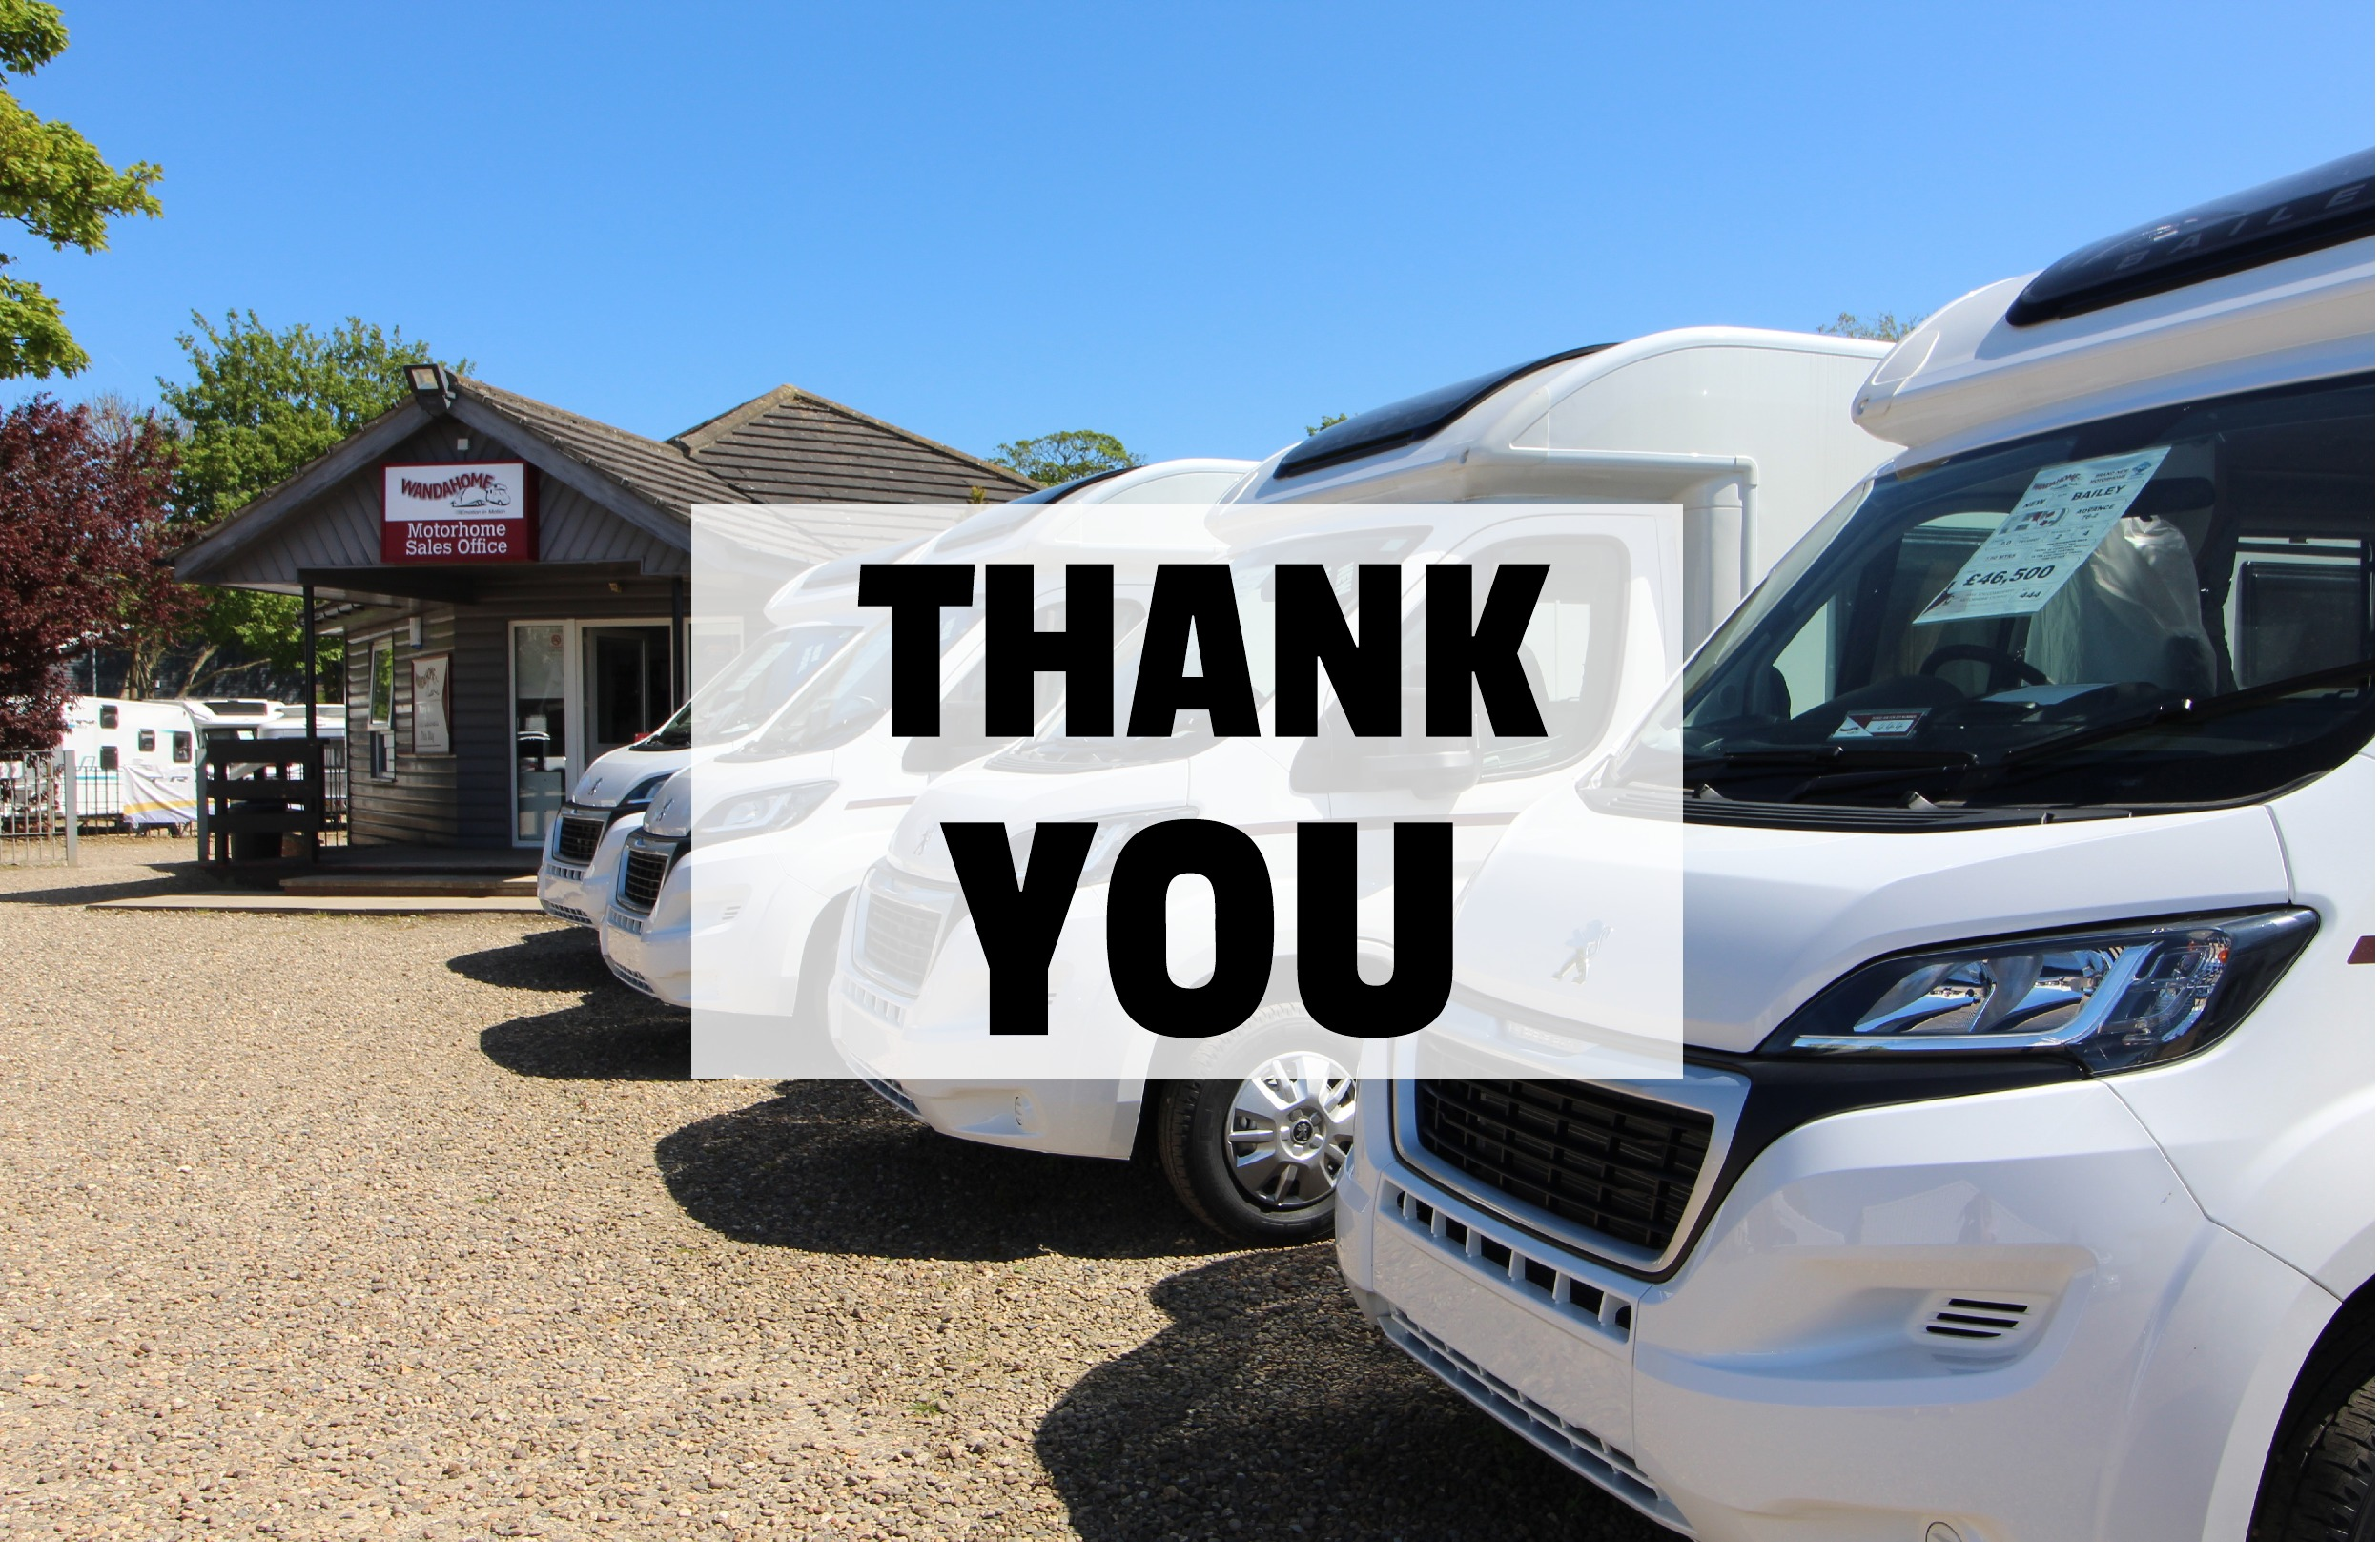 A Thank you from all at Wandahome South Cave